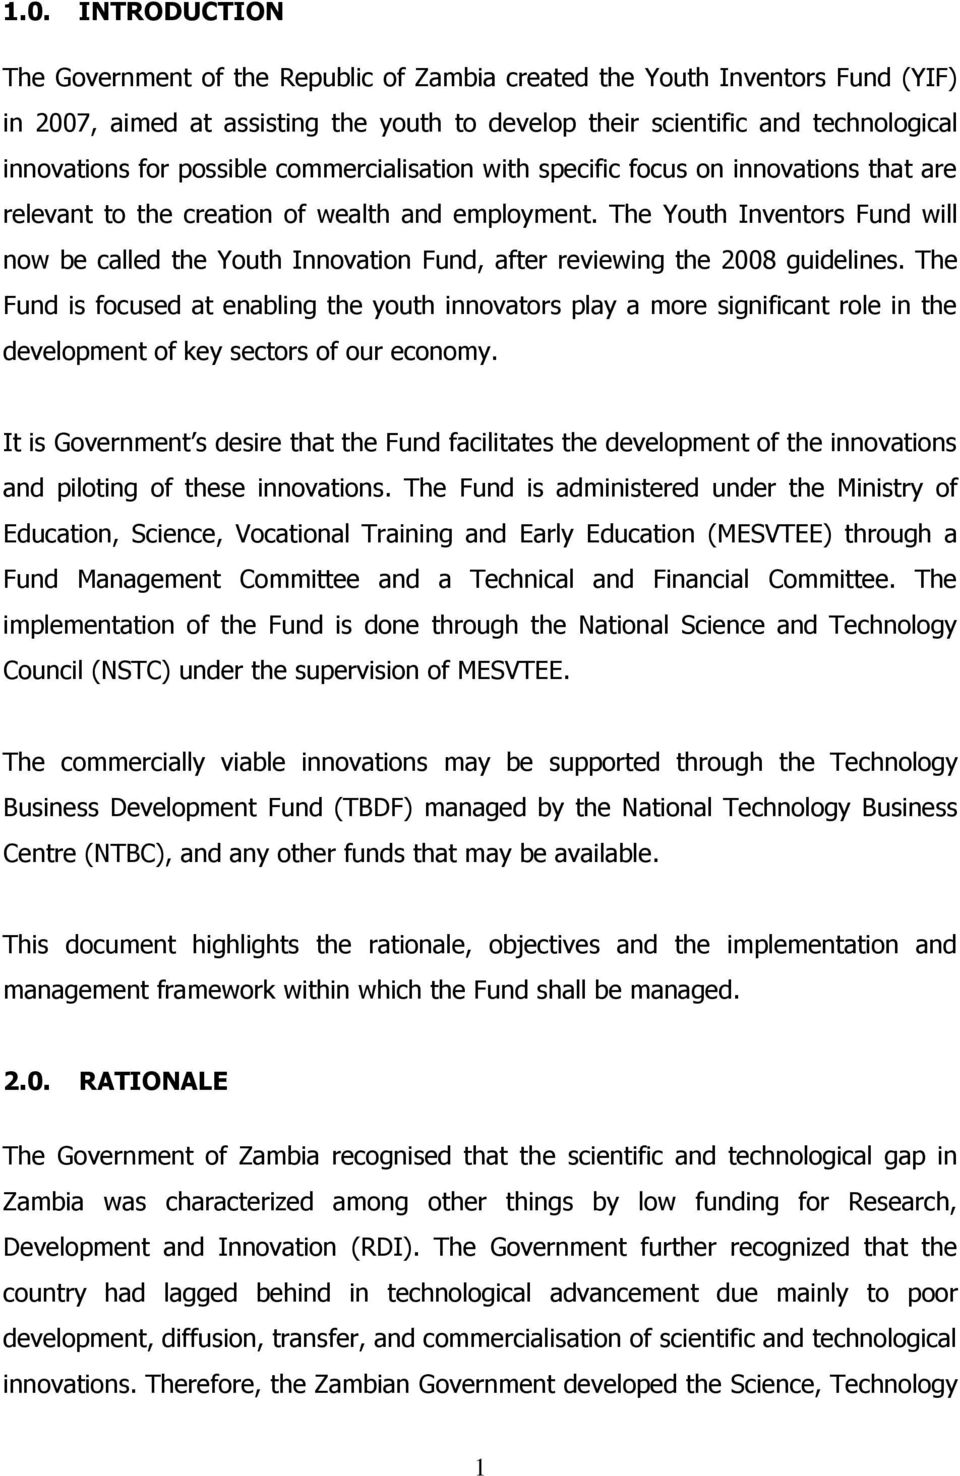 The Youth Inventors Fund will now be called the Youth Innovation Fund, after reviewing the 2008 guidelines.